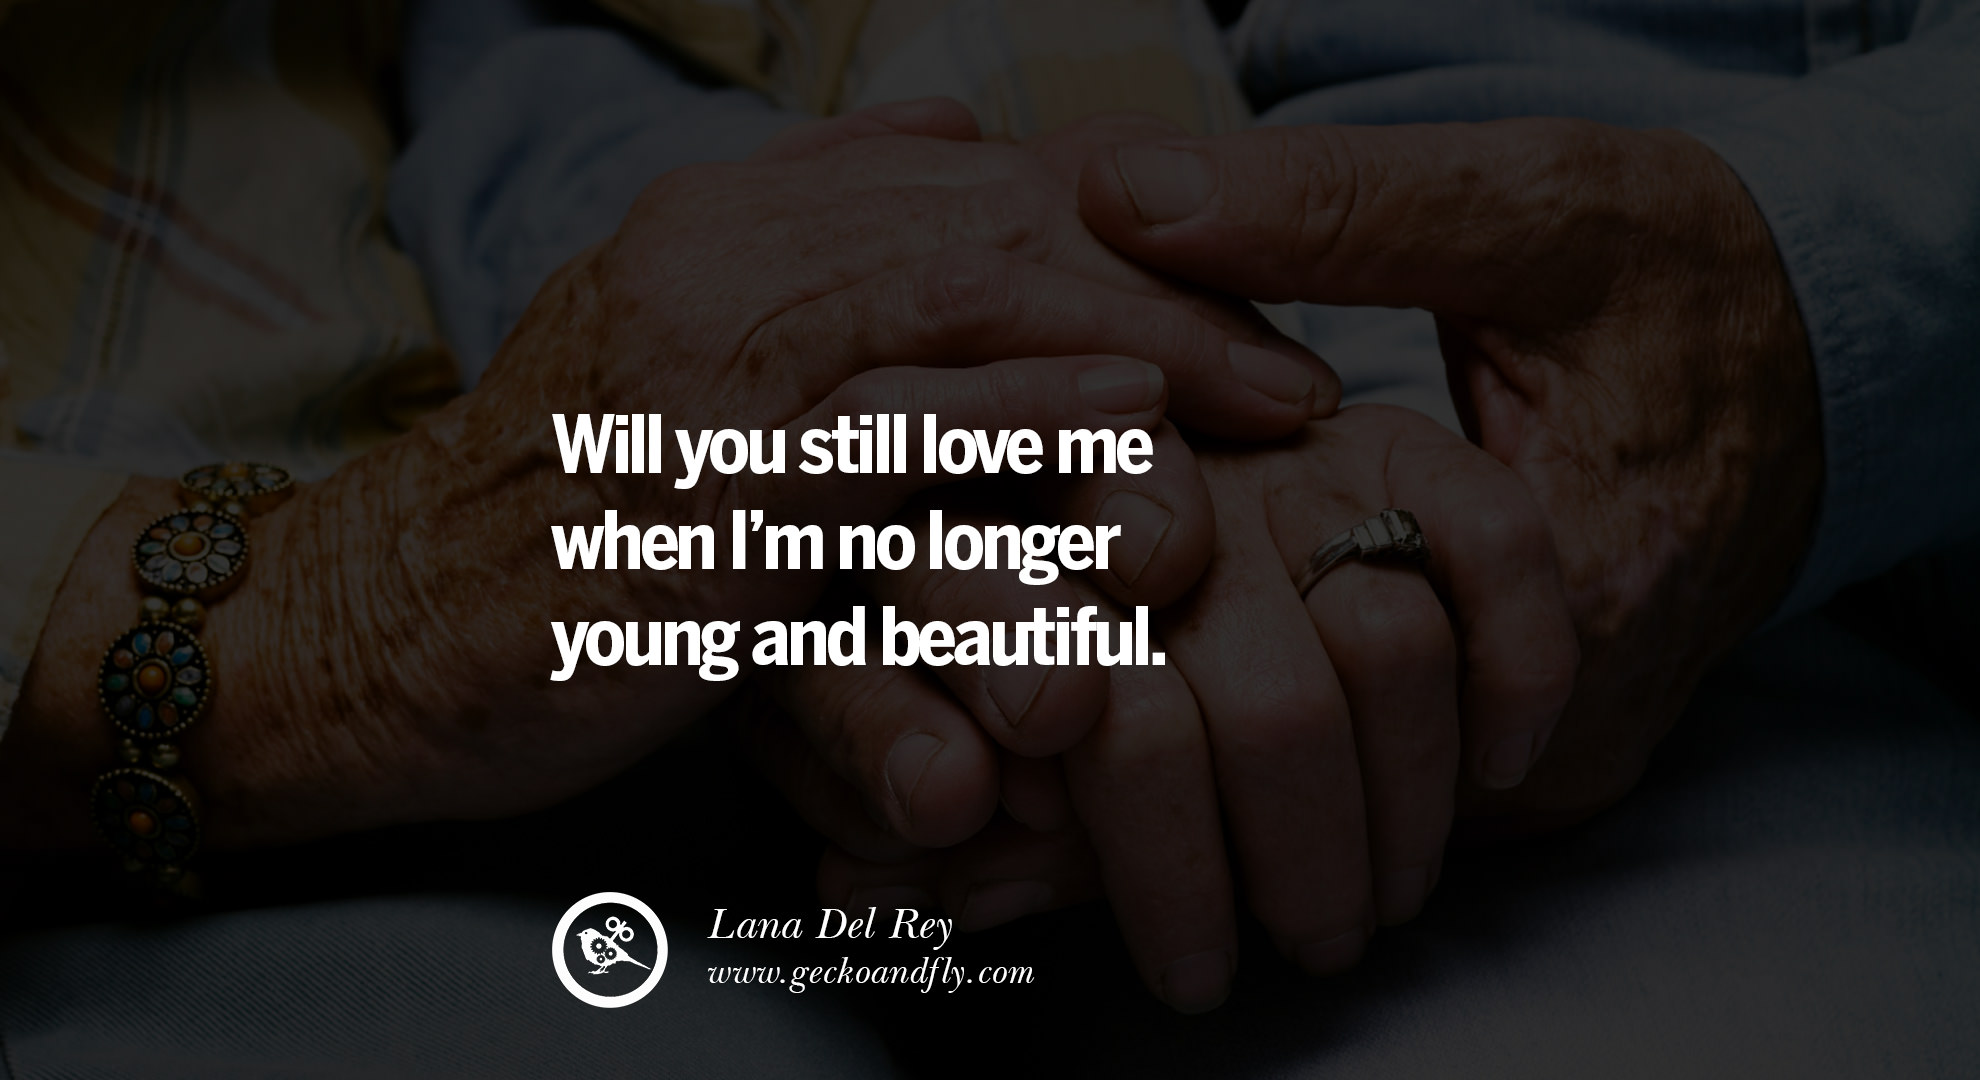 Irish Love Quotes Wedding 40 Romantic Quotes About Love Life Marriage And Relationships